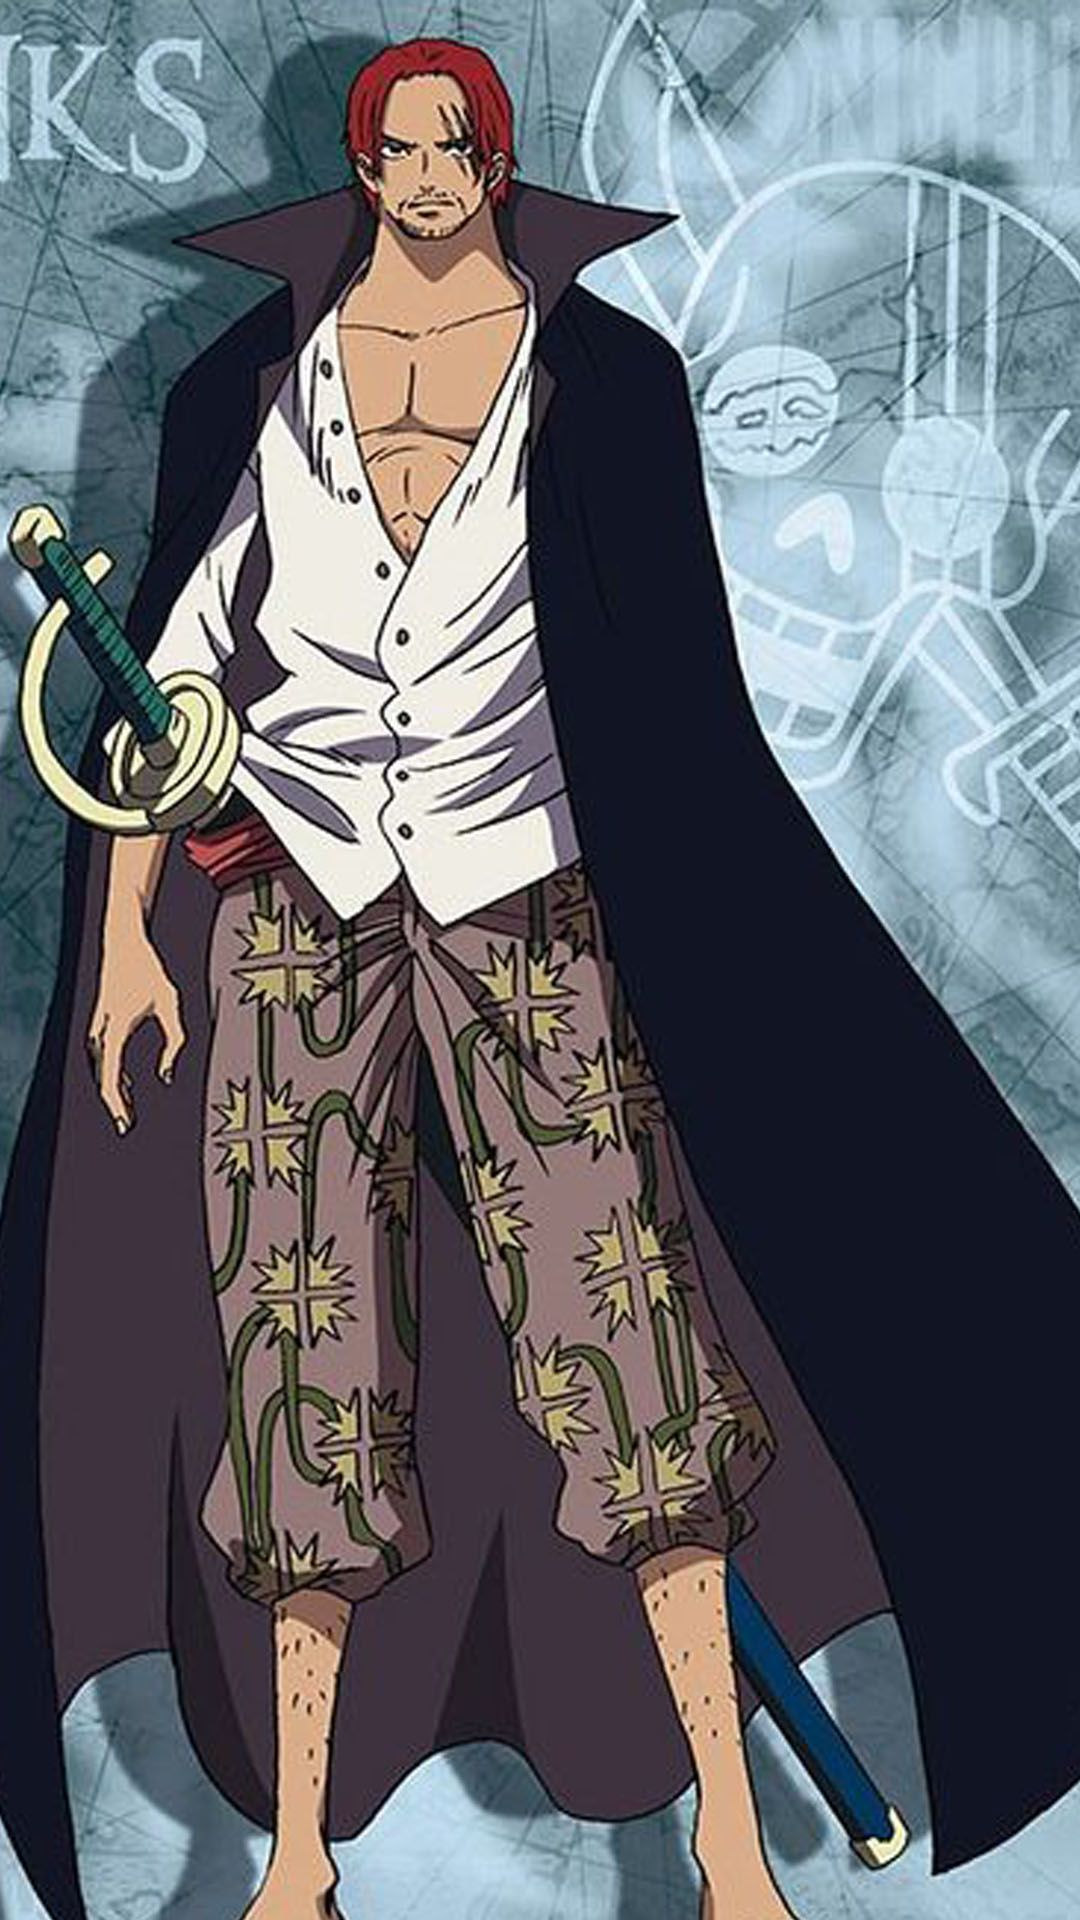 Shanks Wallpaper 11 Shanks One Piece Anime One Piece Disney